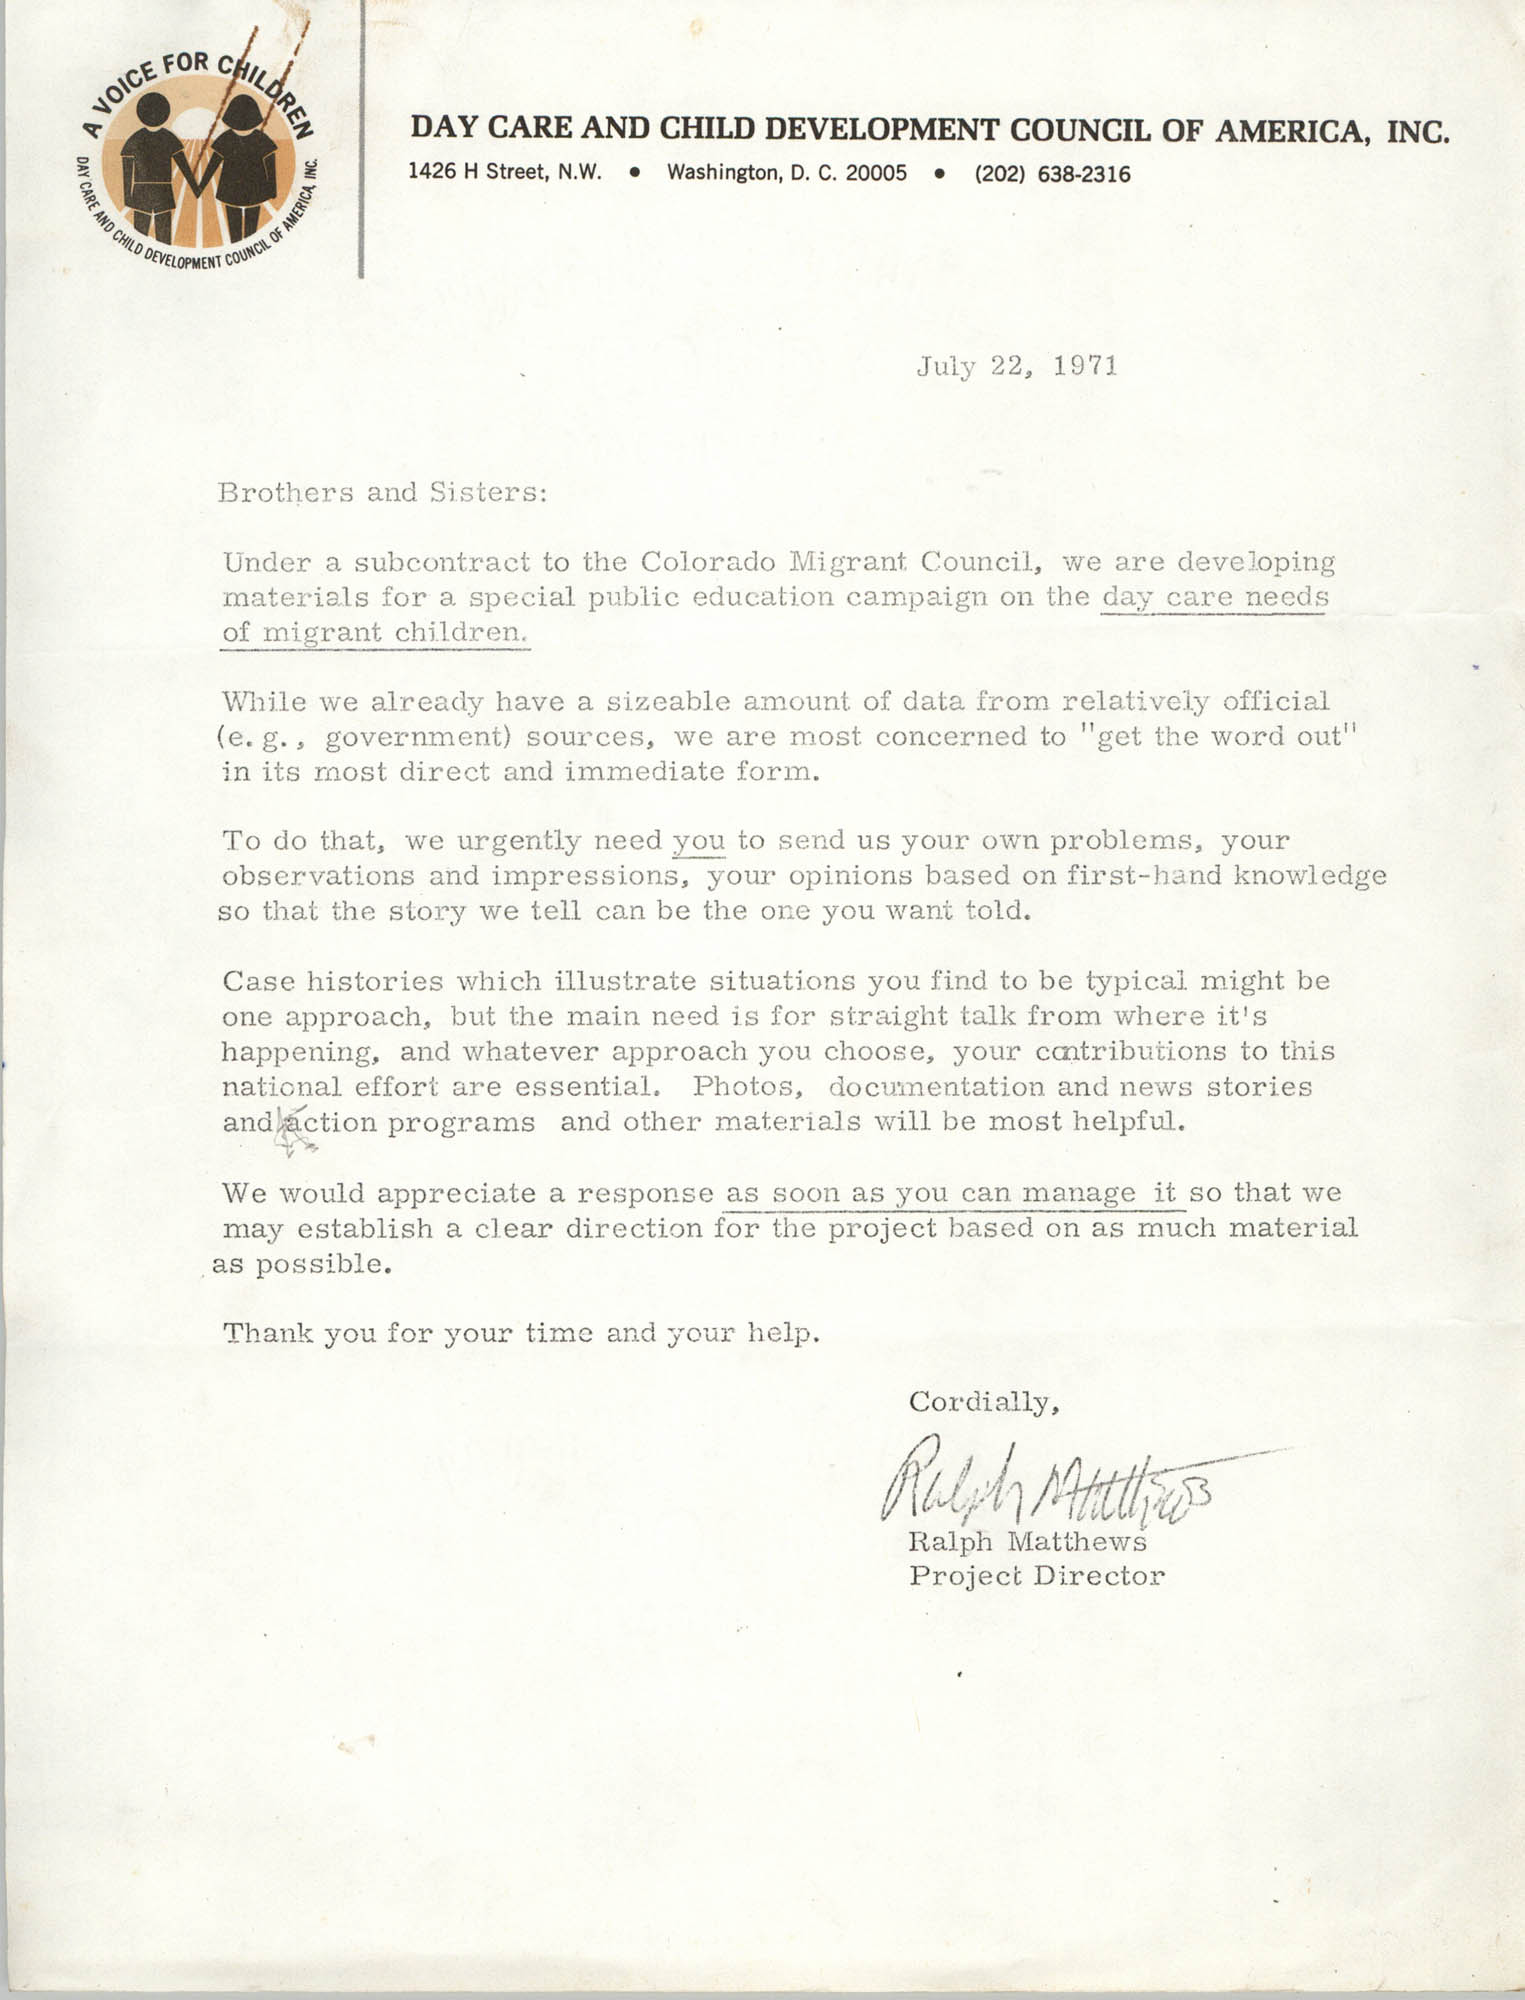 Letter from Ralph Matthews to